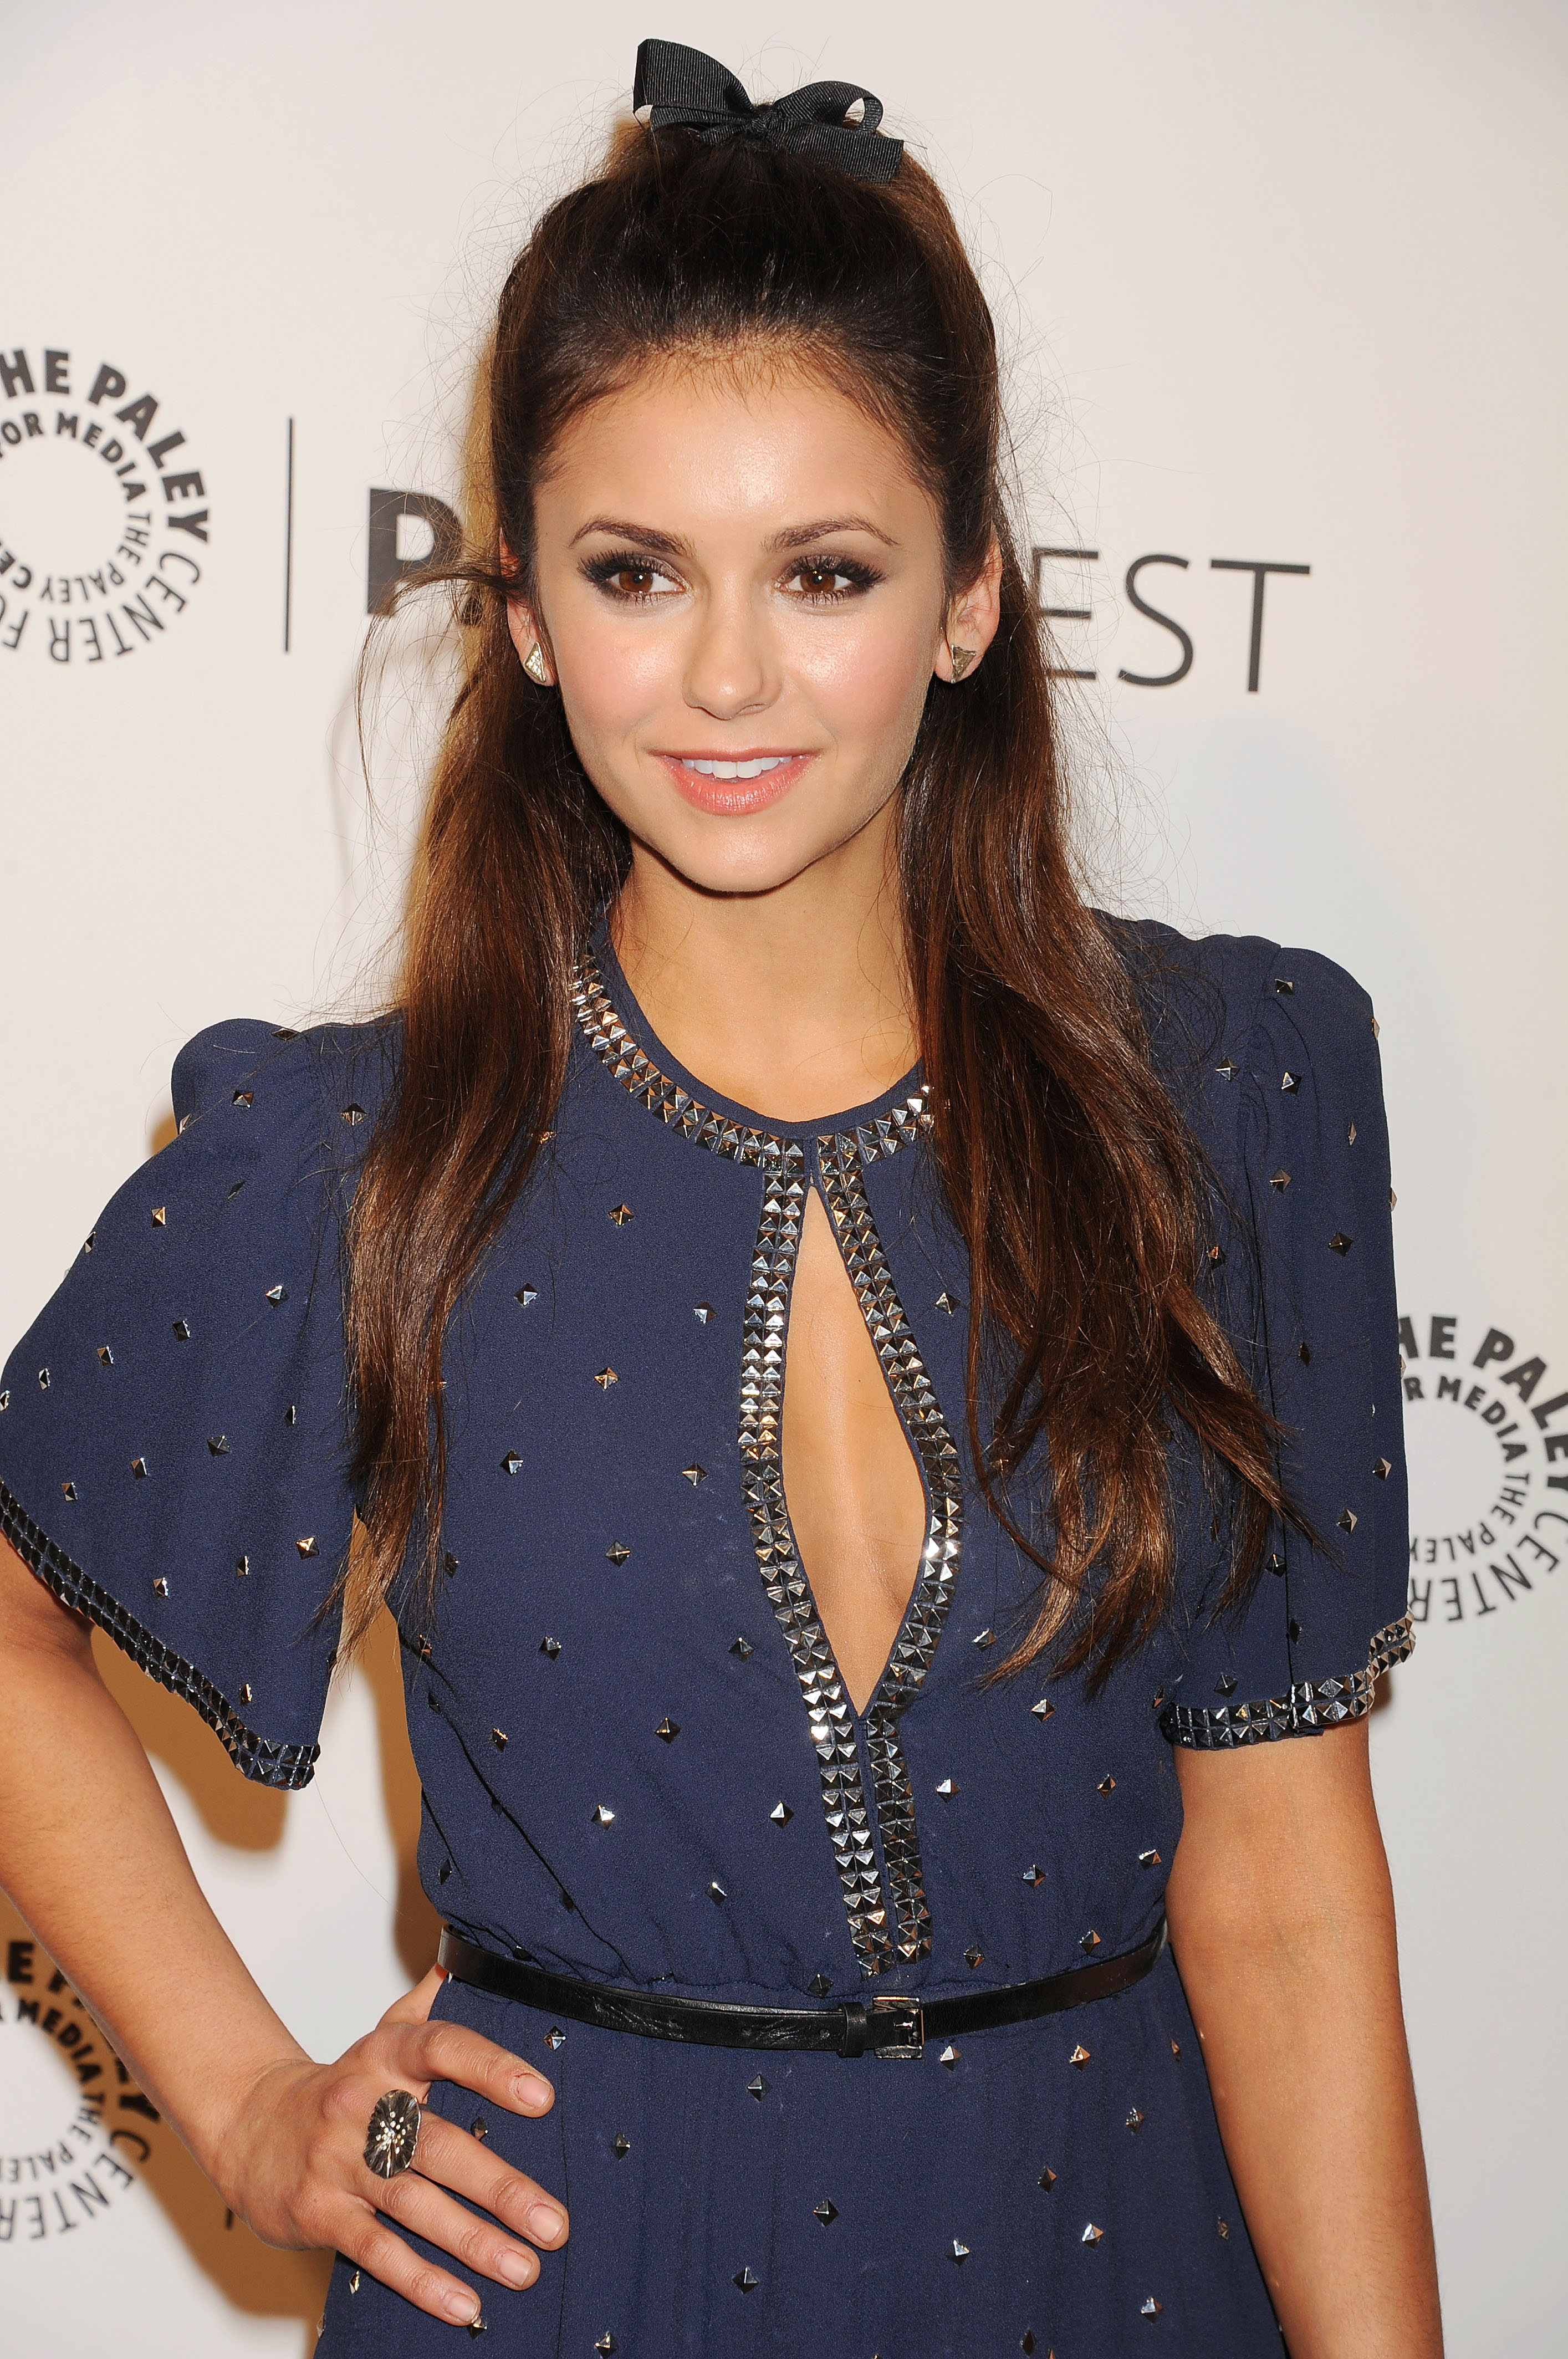 Look of the week: Nina Dobrev rocks a hairstyle your inner-4th grader will love